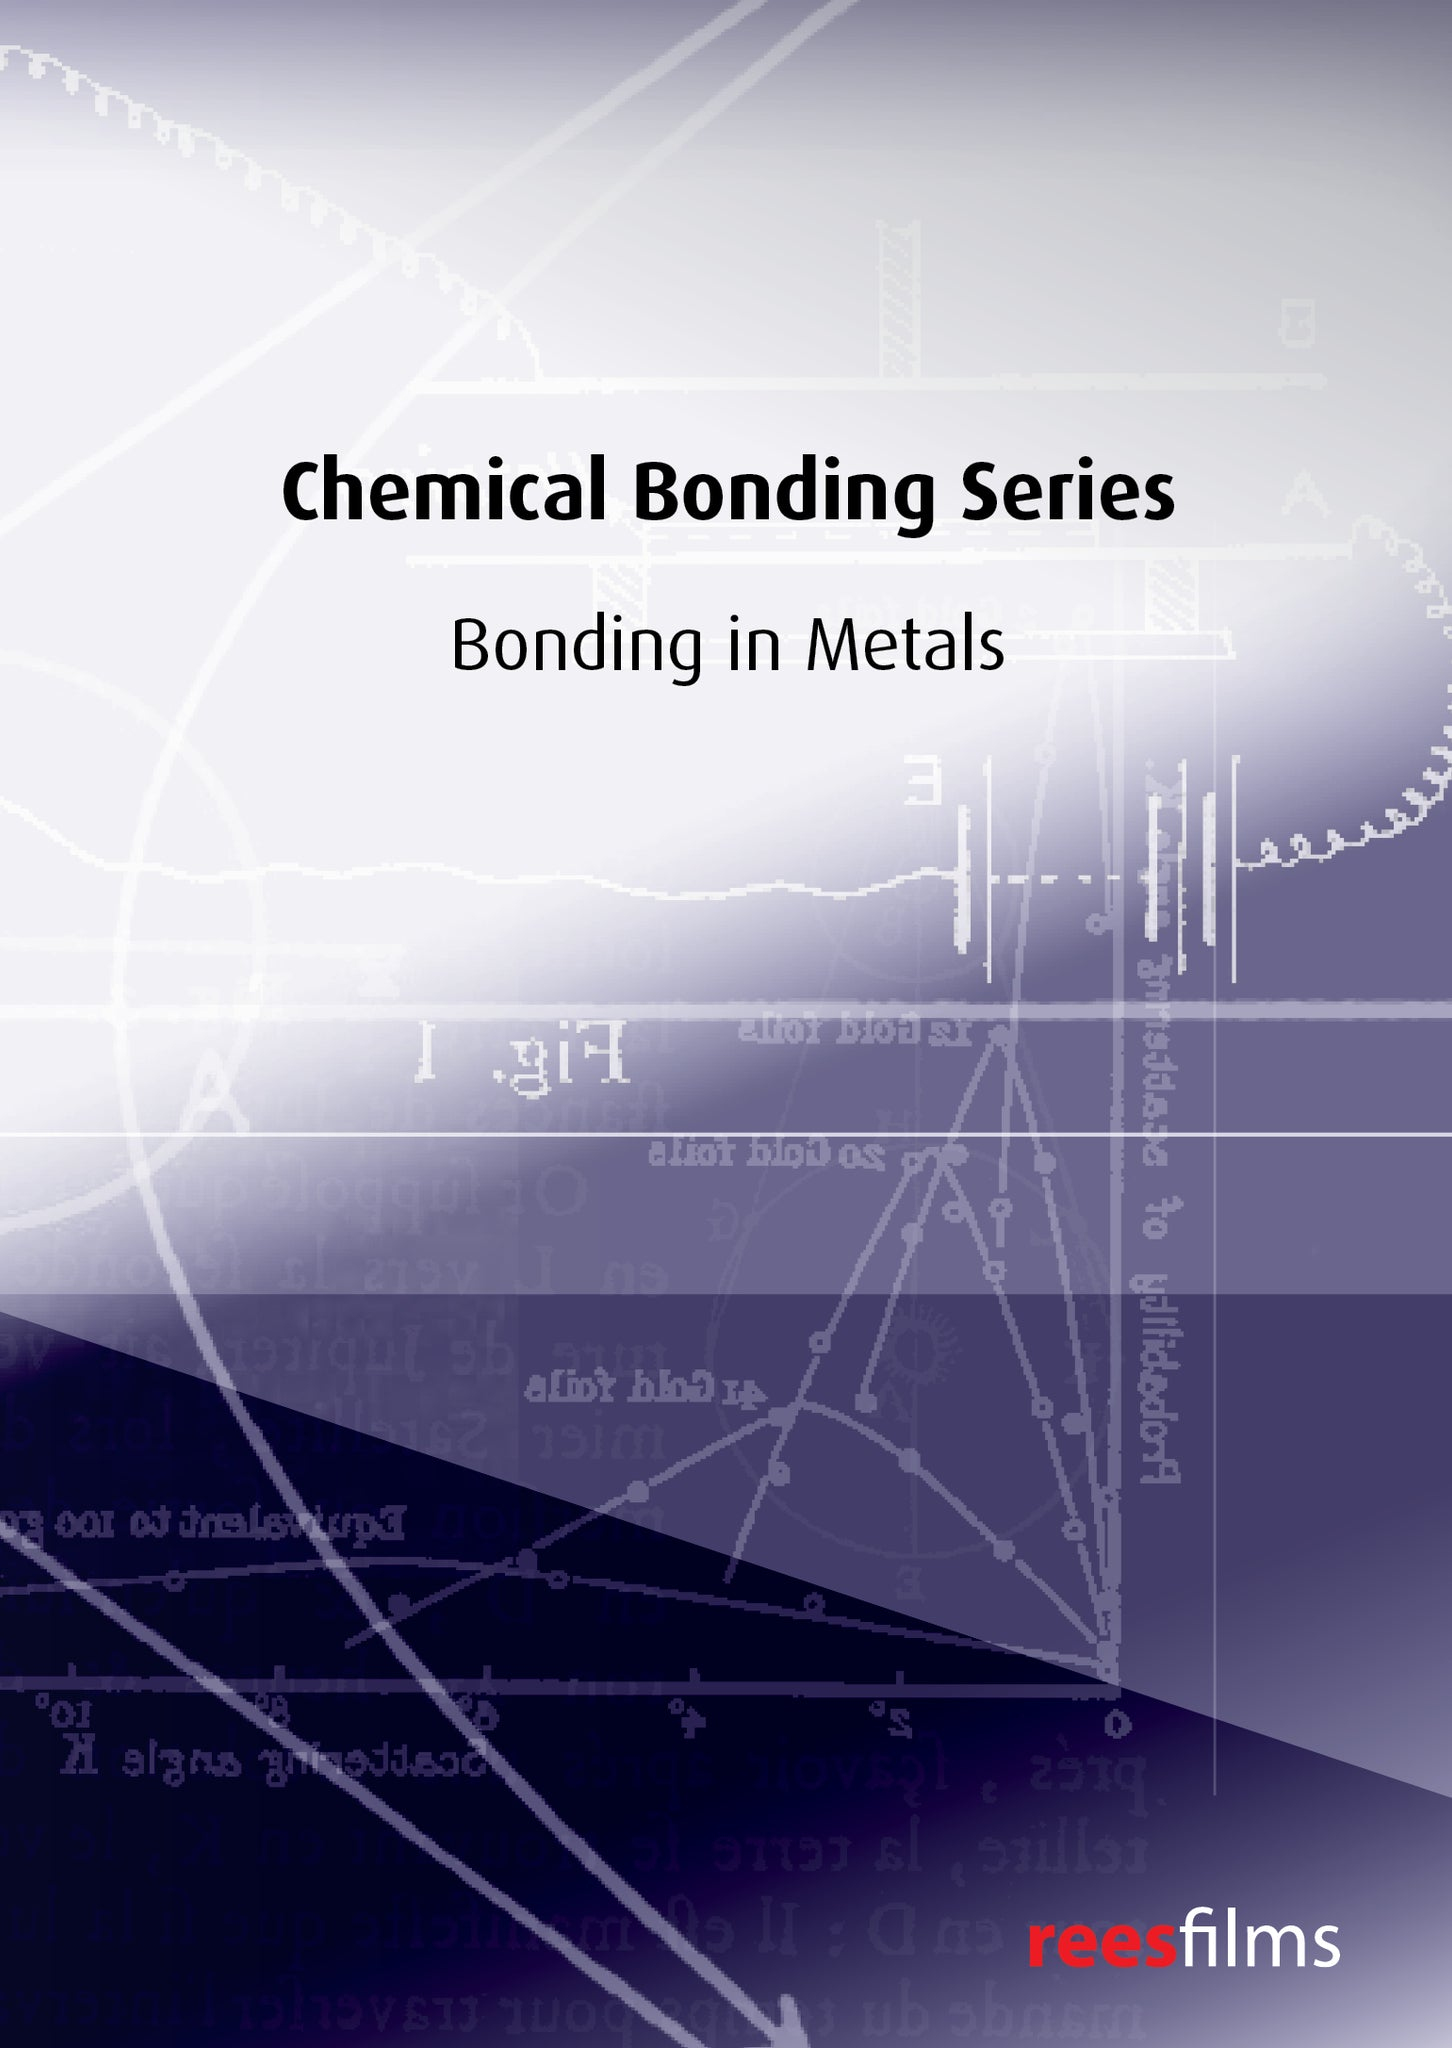 Chemical Bonding Series: Bonding in Metals